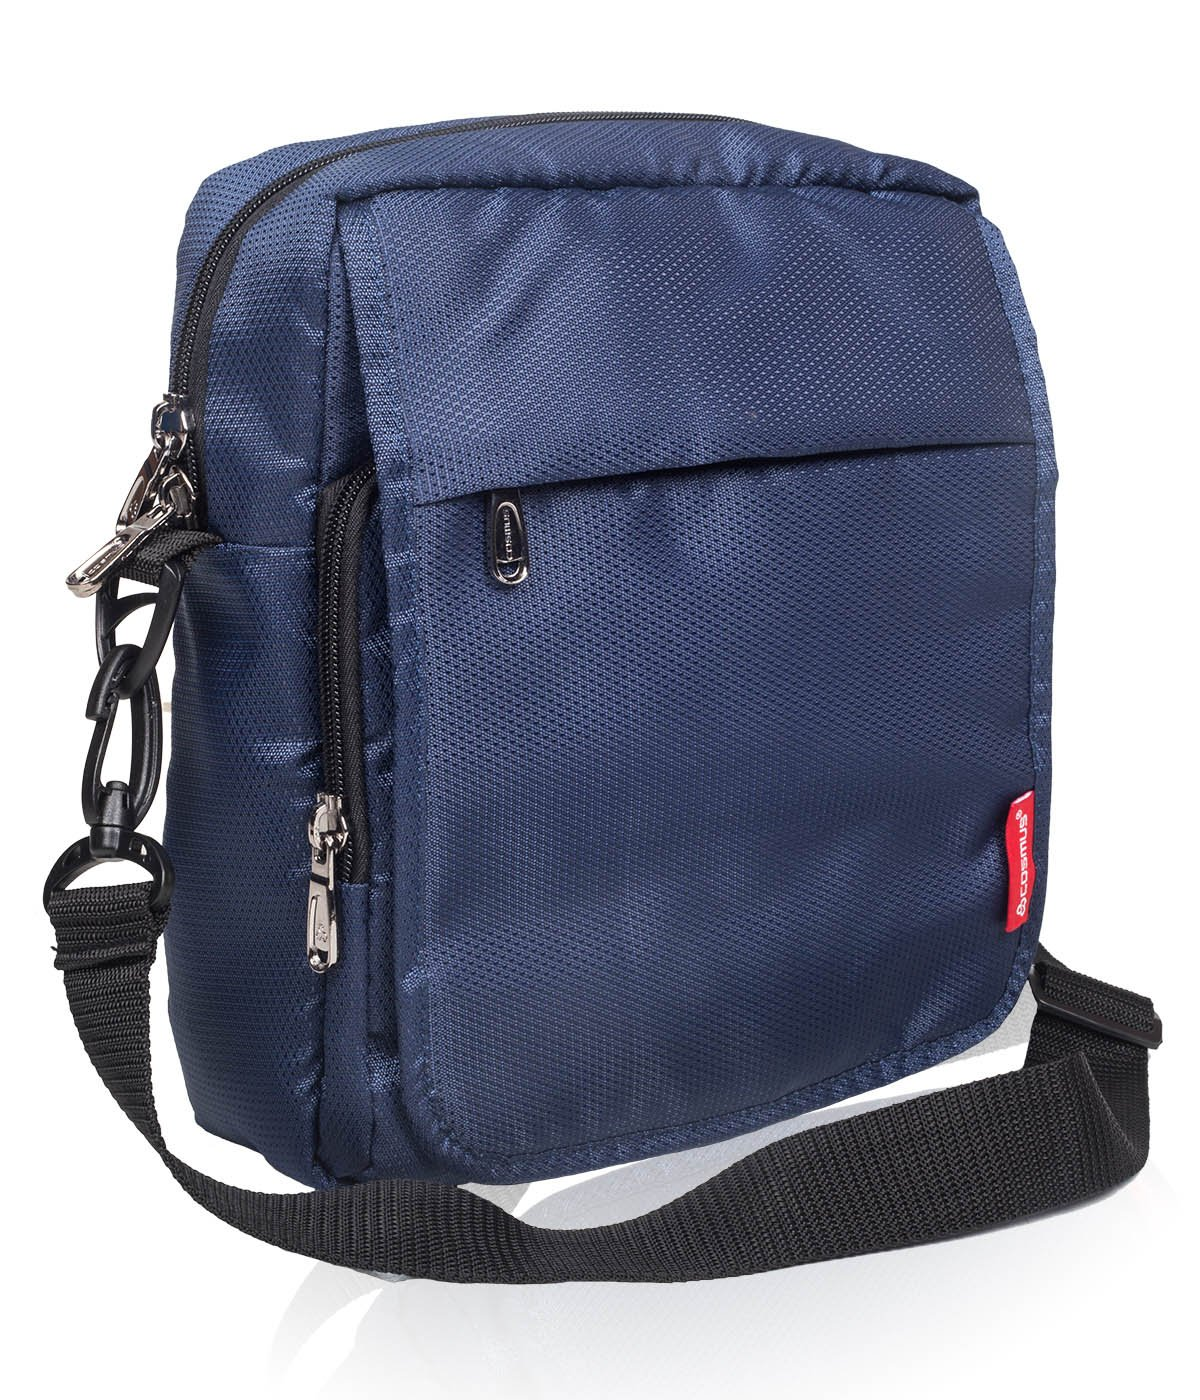 9eea8dc67e5c Cosmus 40051029008 6L Messenger Bag (Navy Blue)  Amazon.in  Computers    Accessories